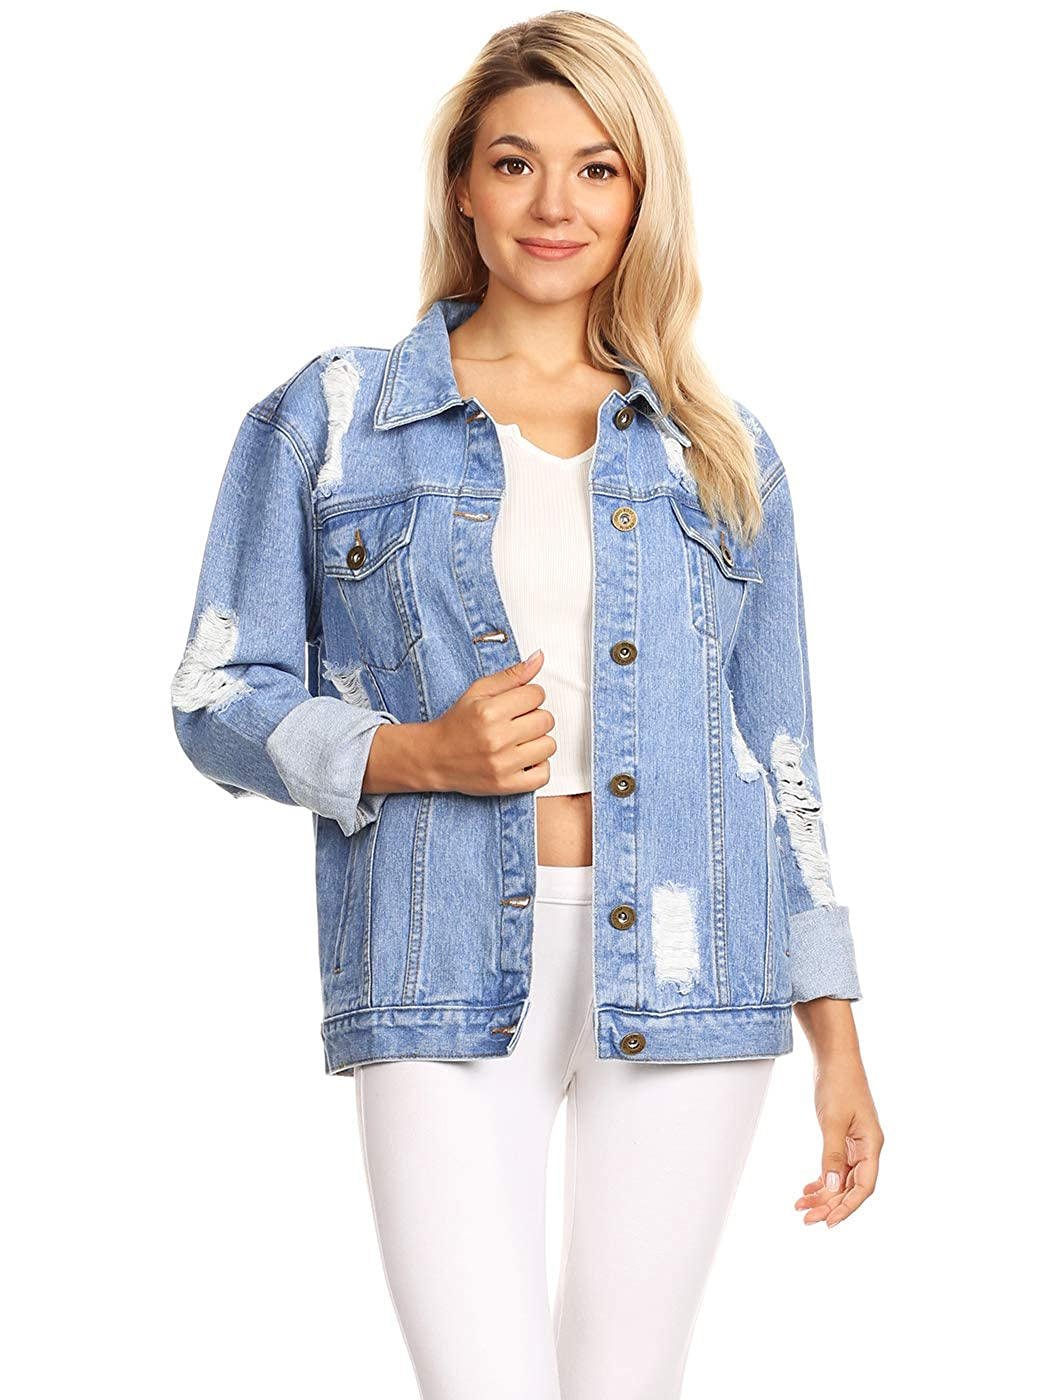 Anna-Kaci Oversized Grunge Chic Distressed Boyfriend Long Sleeve Denim Jacket Medium YBA0105-M